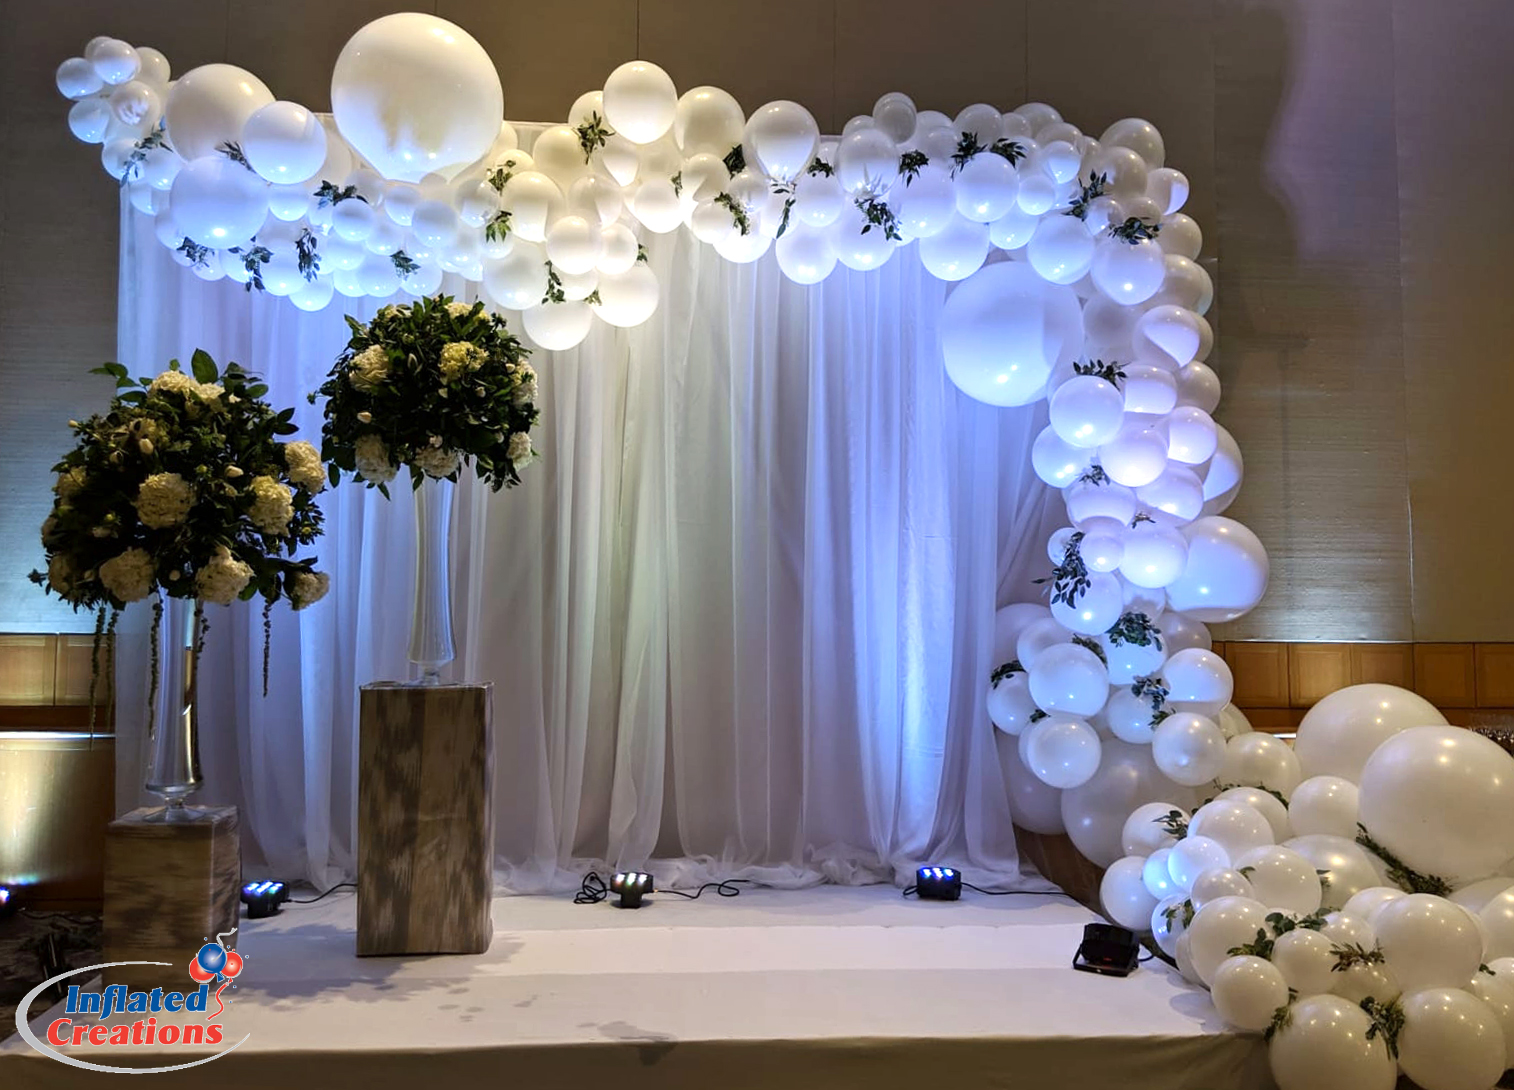 Organic Balloon Arch - Badeken Wedding Decor